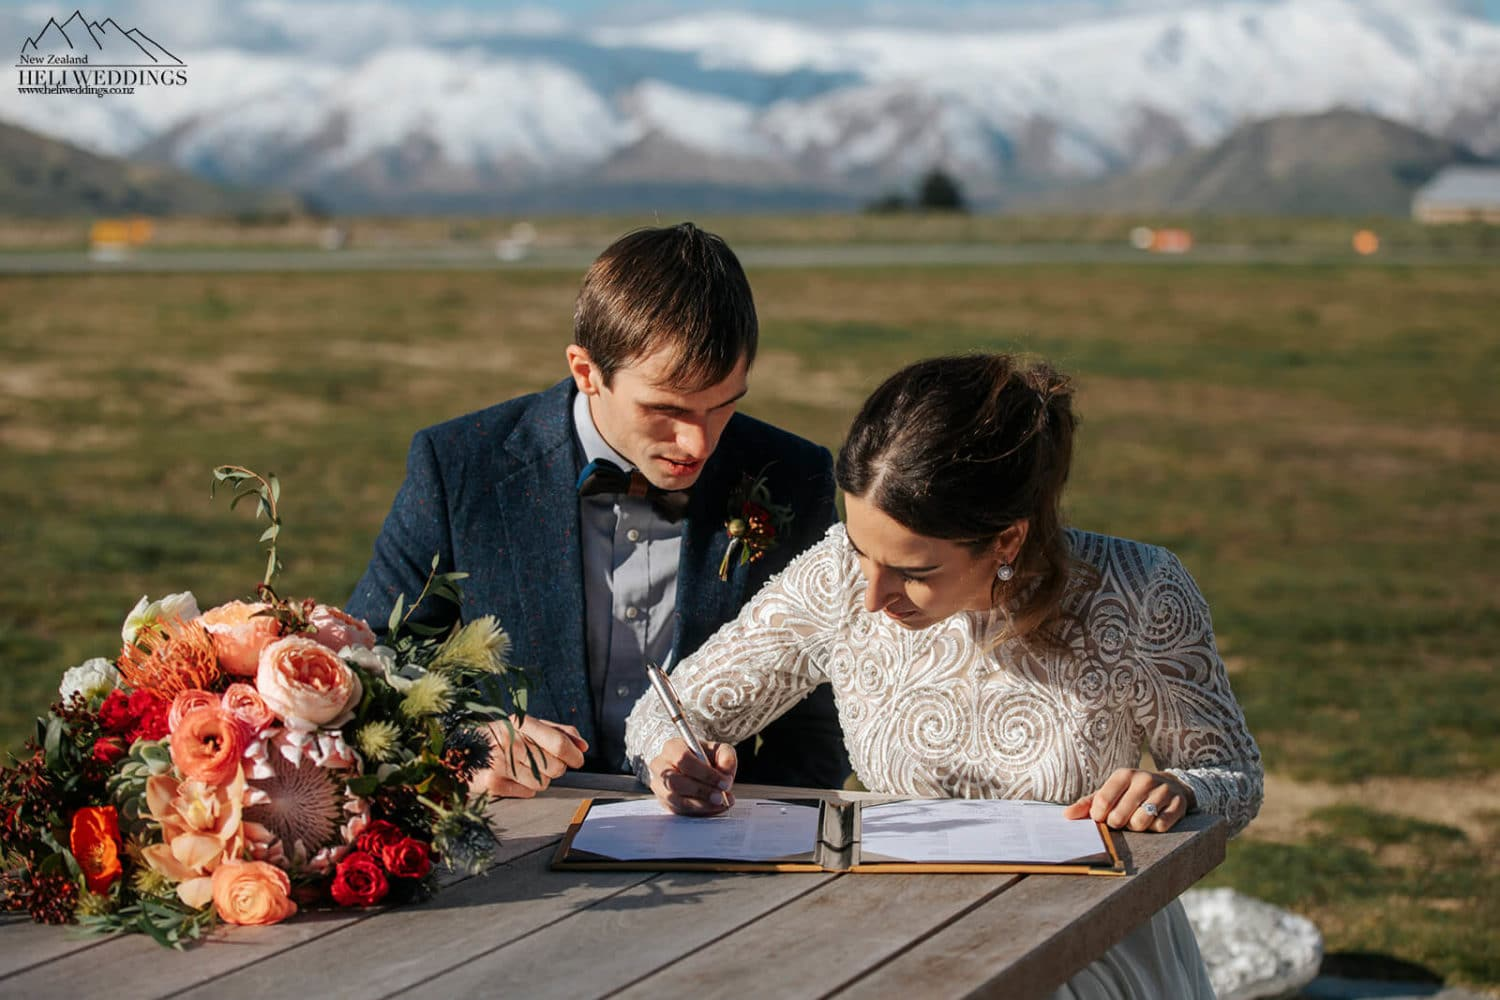 Signing the wedding licence in Queenstown